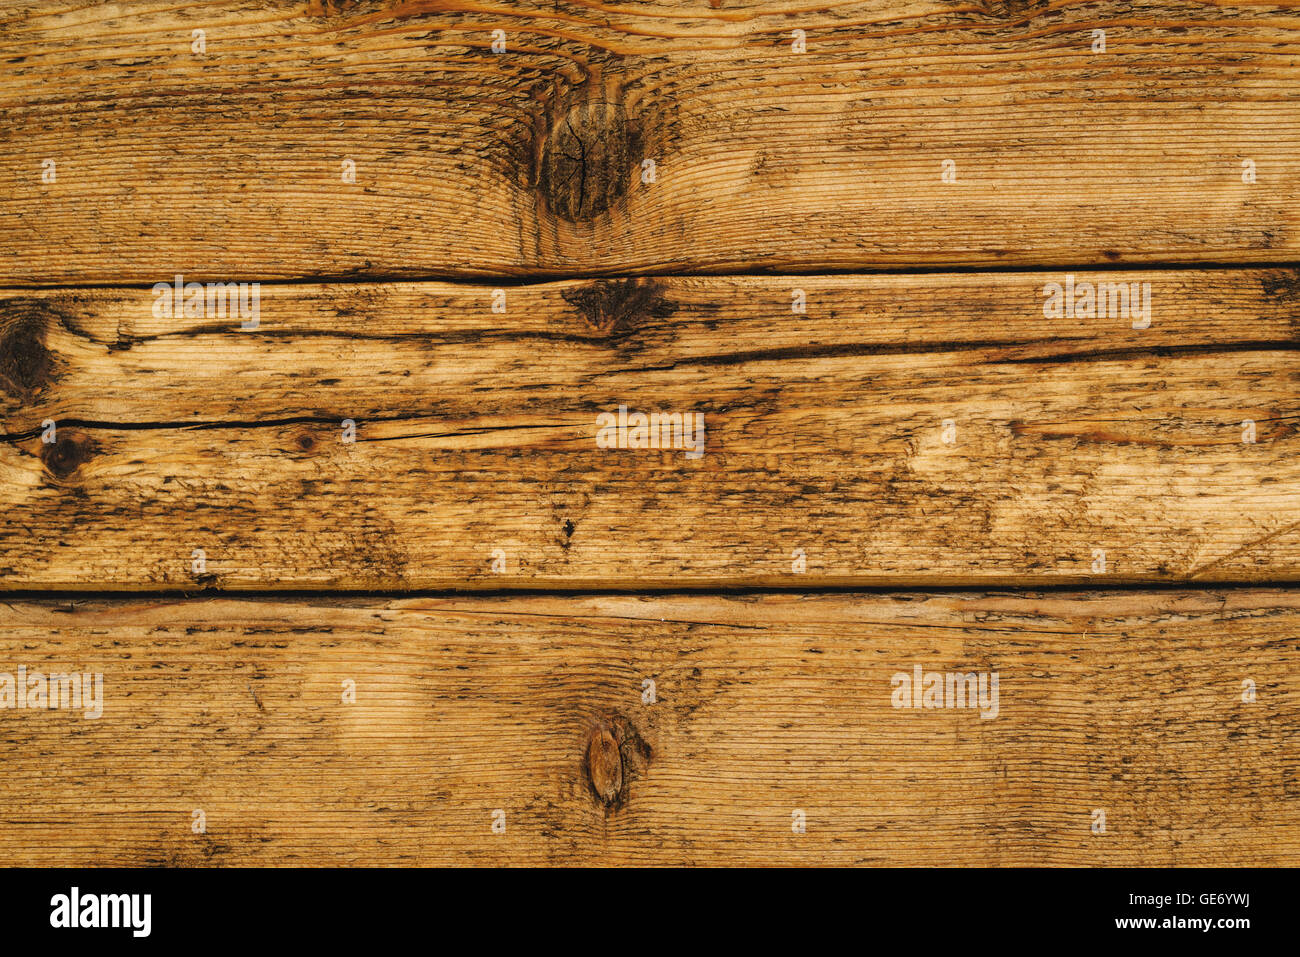 wet wooden floor board surface of solid rustic wood planks stock